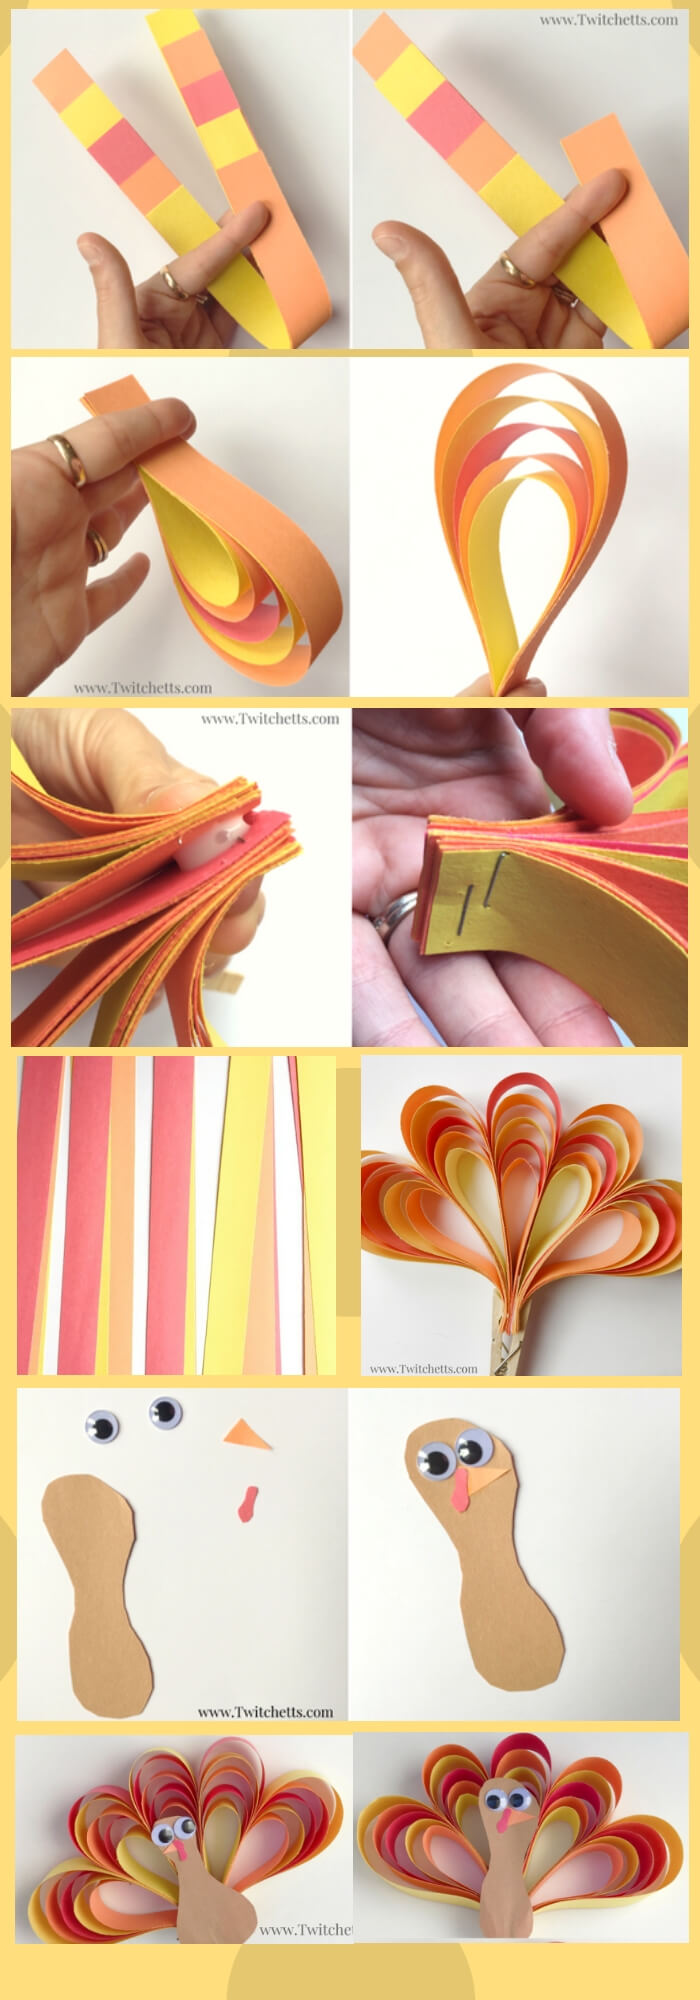 3D construction paper turkey craft | Simple Ideas for Kids' Crafts for Thanksgiving - FarmFoodFamily.com